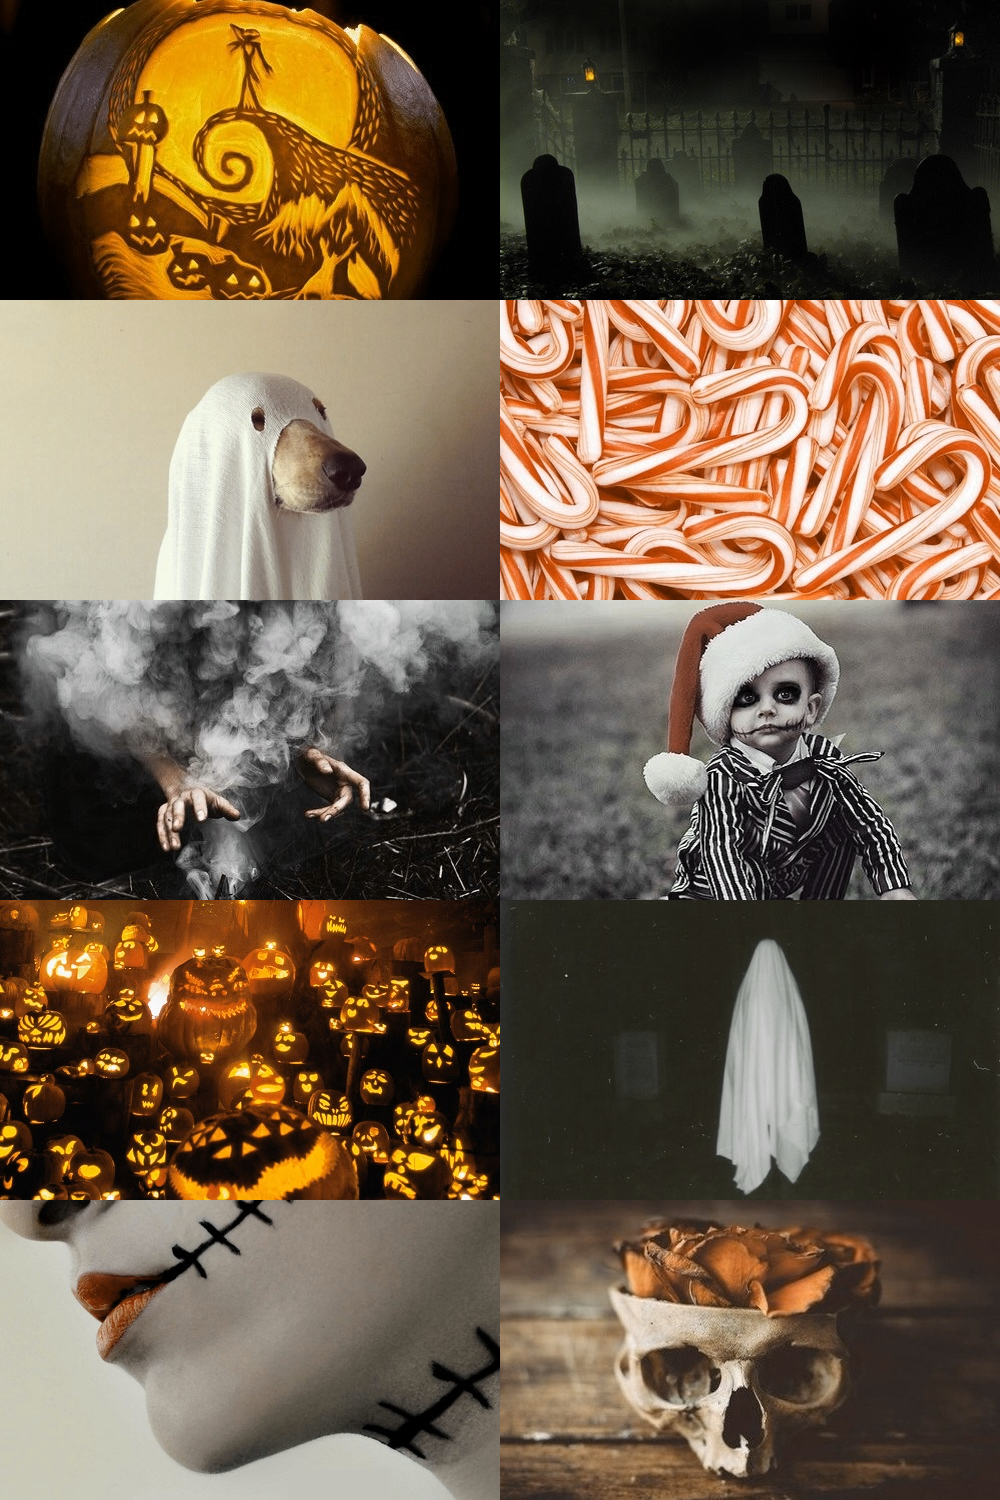 The Nightmare Before Christmas Aesthetic ; requested by anon | natal ...